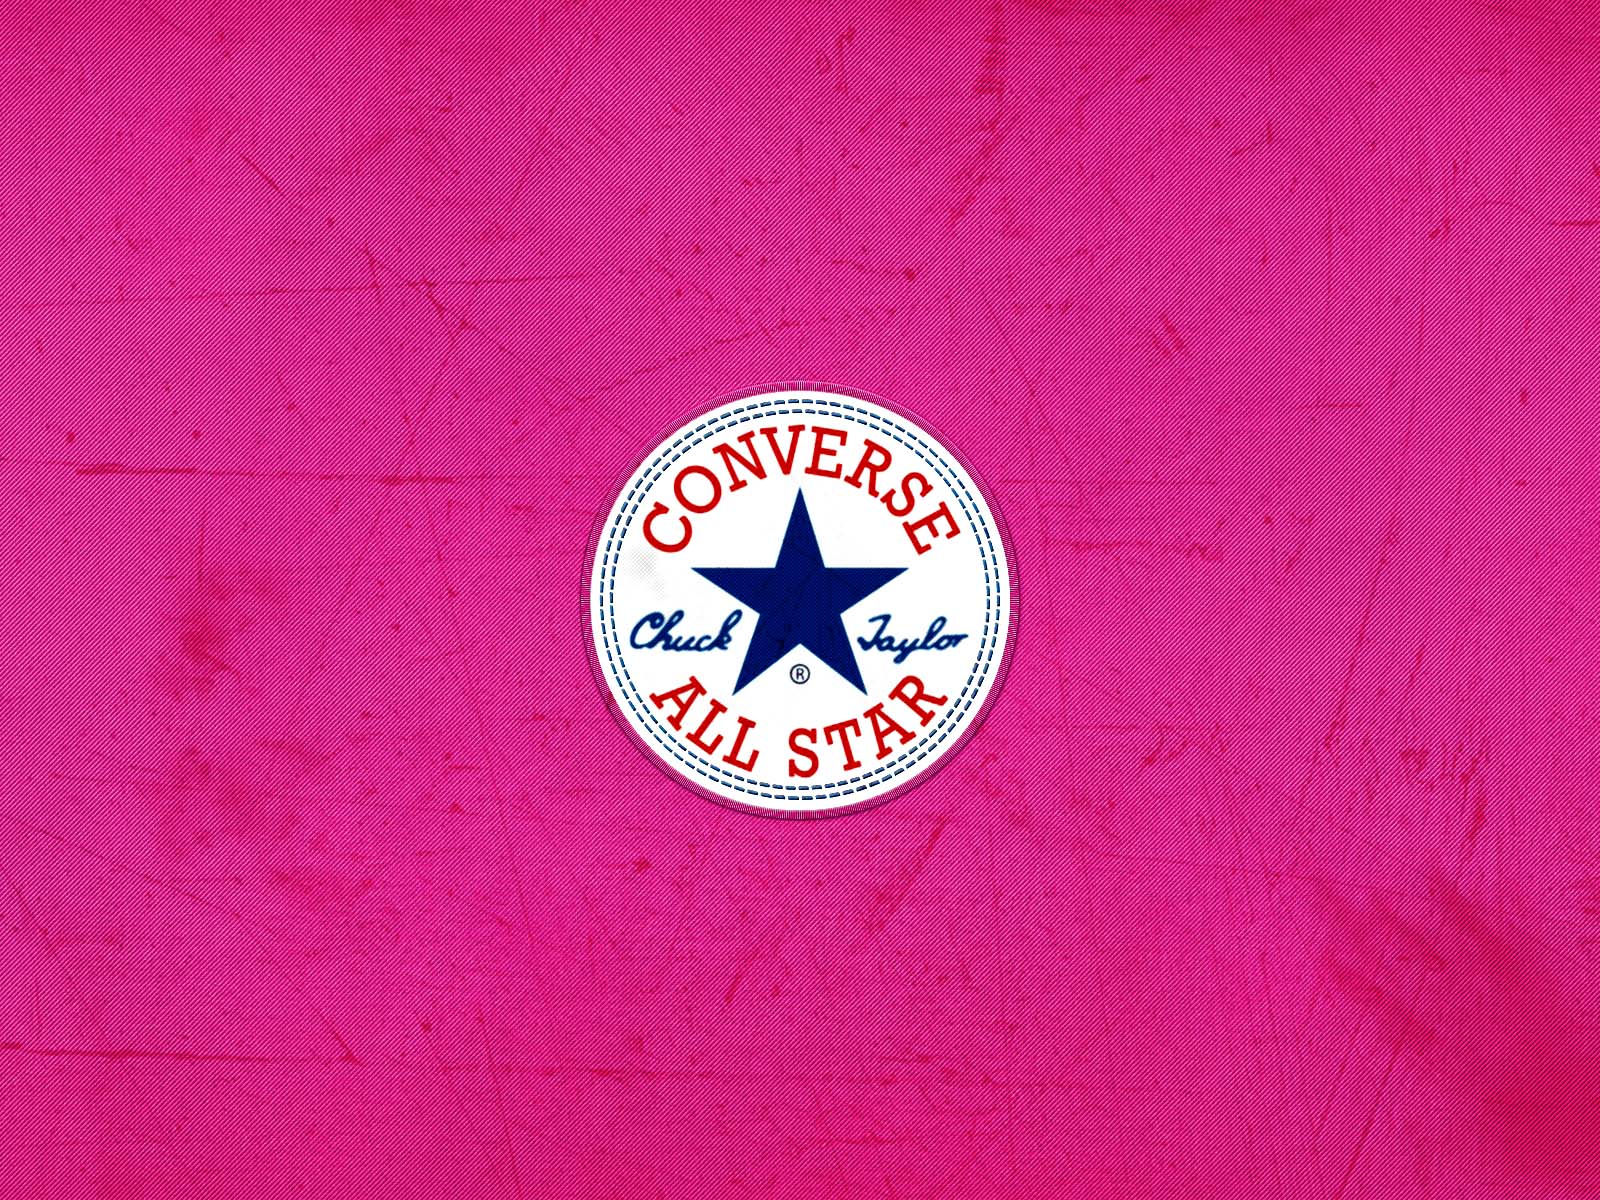 Converse All Star HD Logo Wallpapers Download Wallpapers in HD 1600x1200